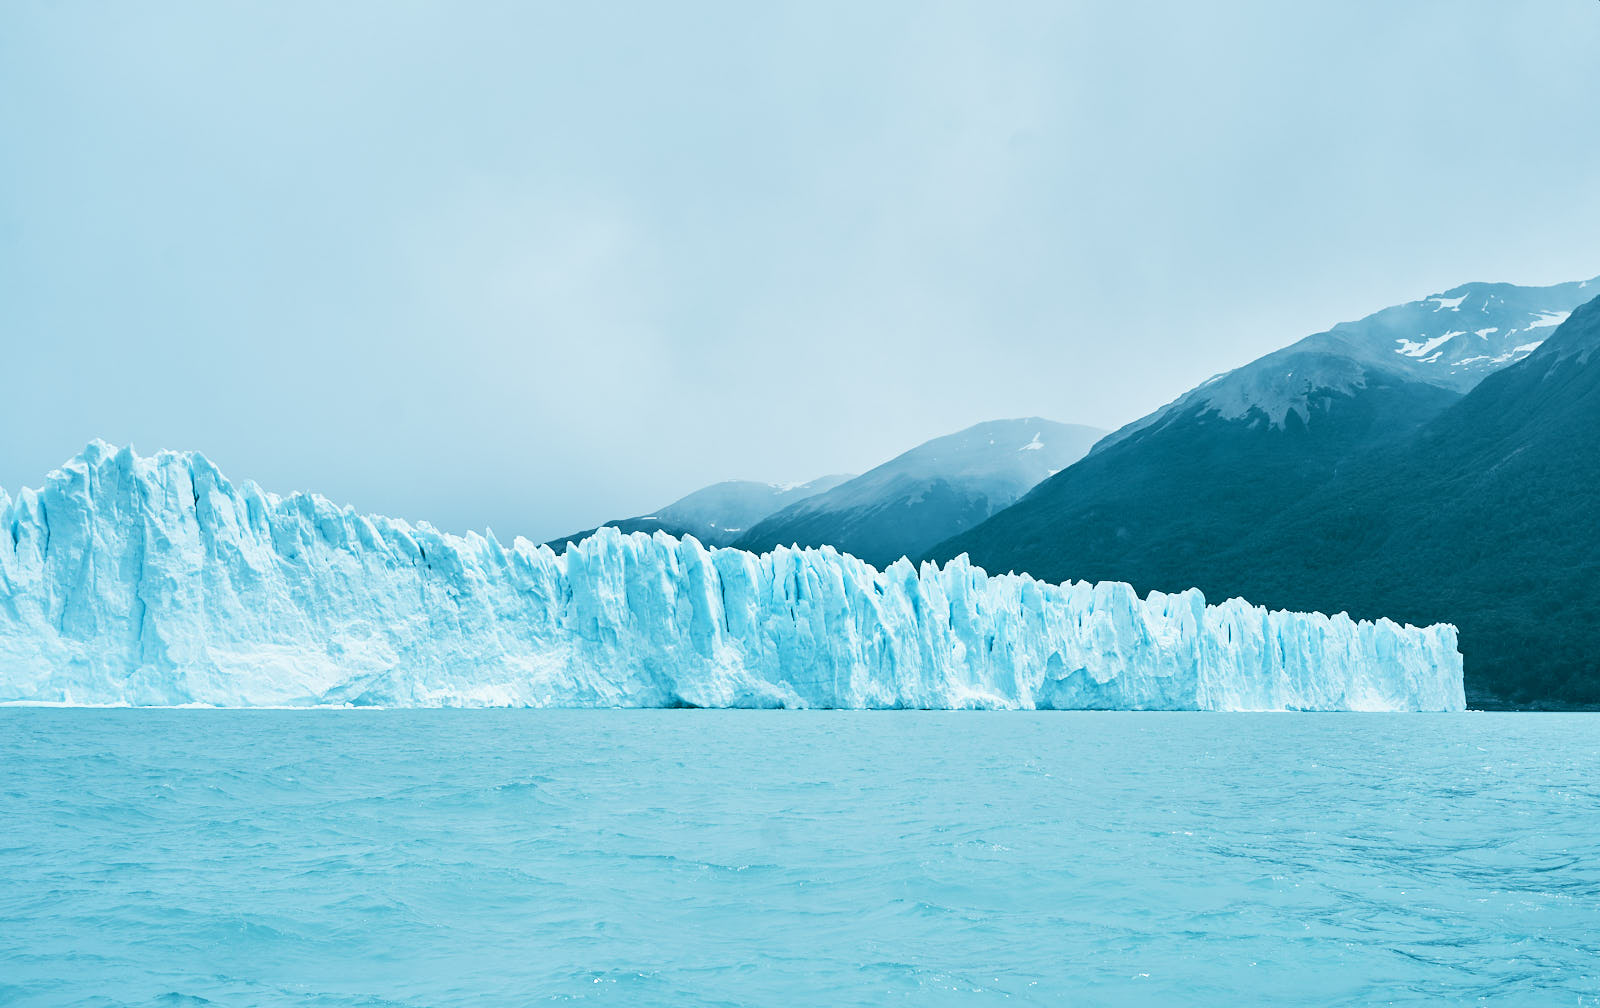 argentina-top-places-to-visit-glaciers-photos-by-afewgoodclicks